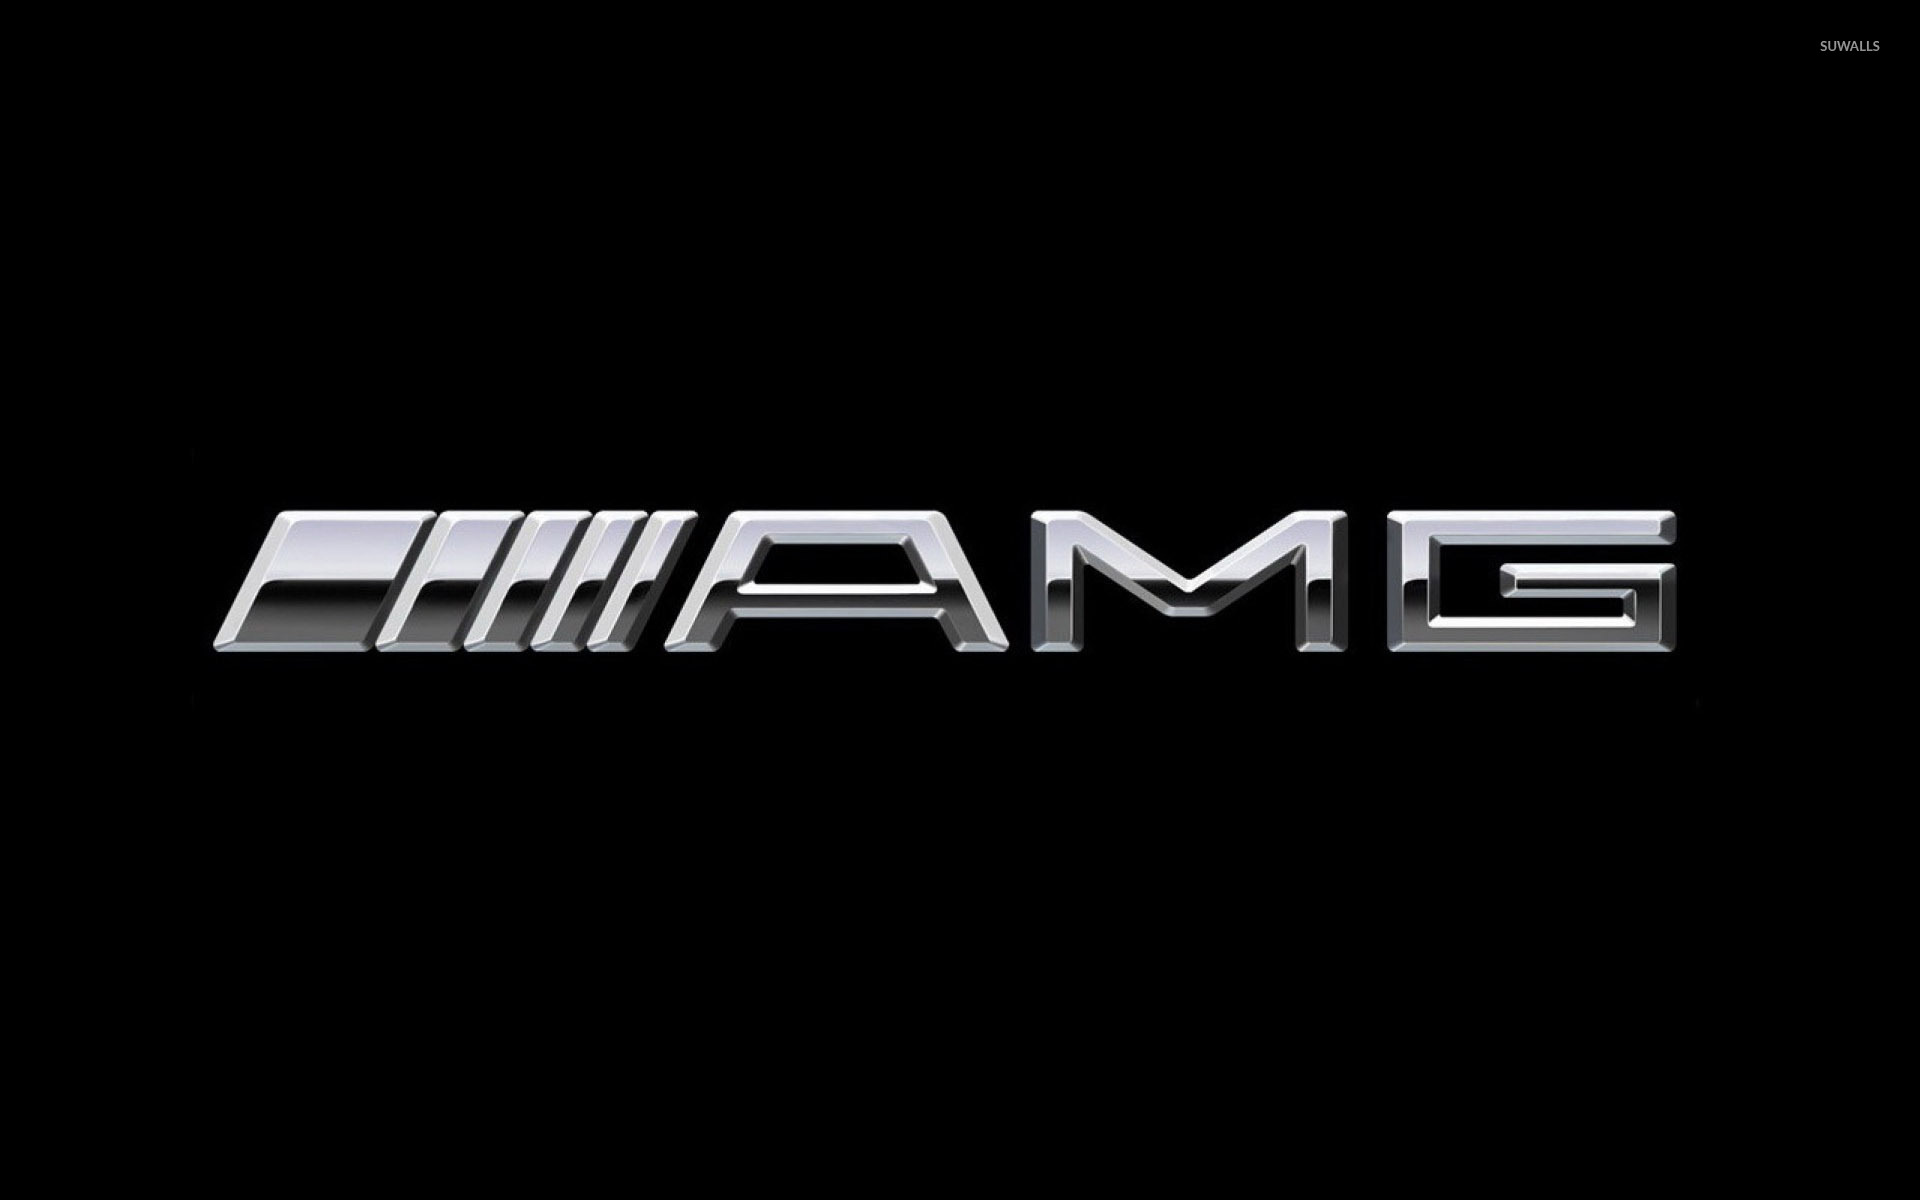 Znak Mercedes Benz >> Mercedes-Benz AMG logo wallpaper - Car wallpapers - #26412